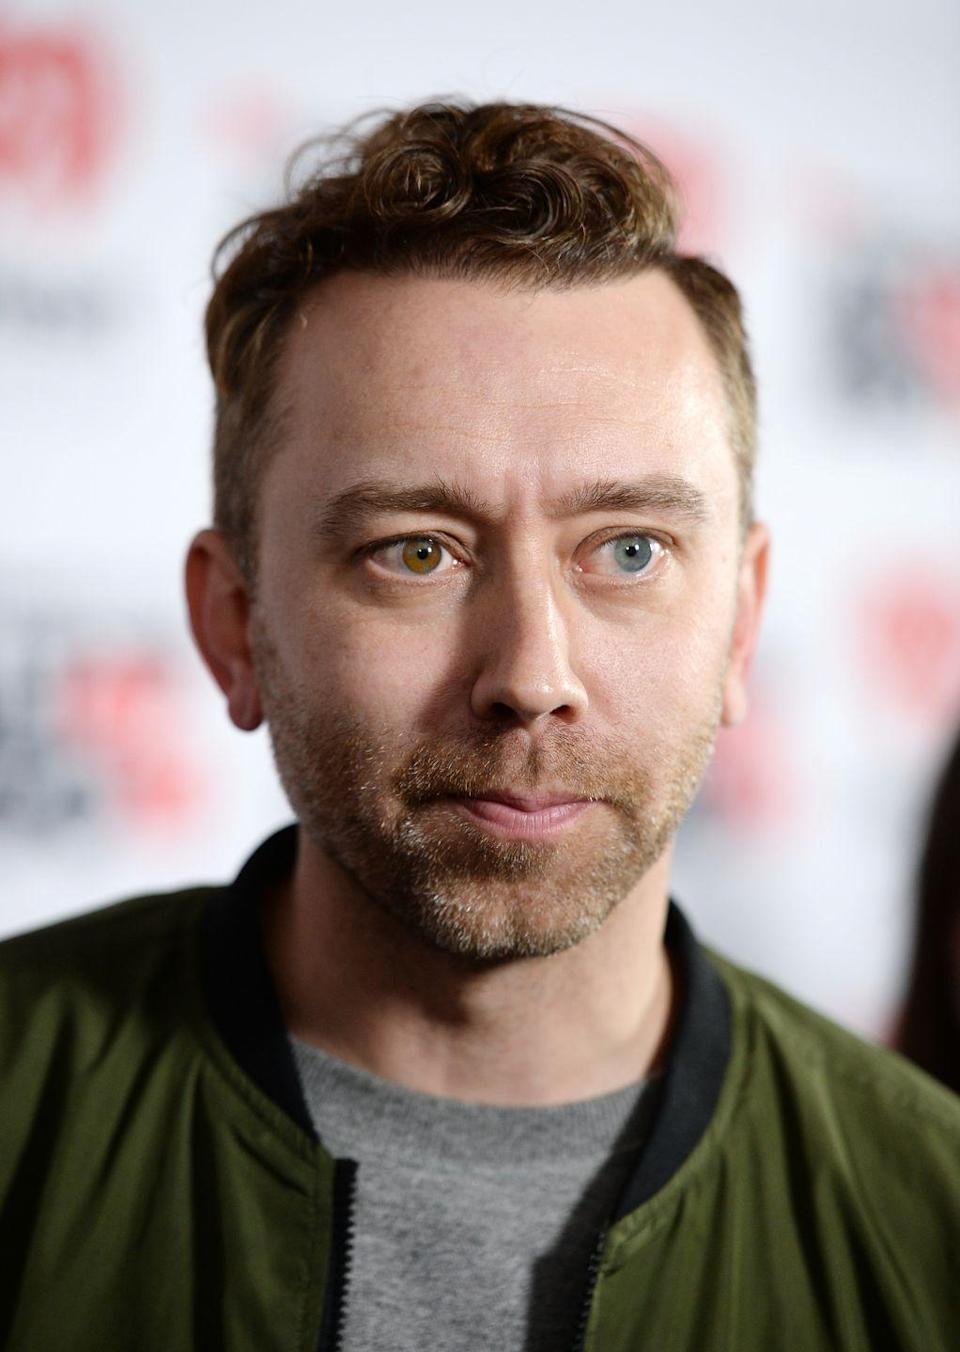 <p>Composer and singer McIlrath's eyes are strikingly different, with one blue eye and one brown.</p>